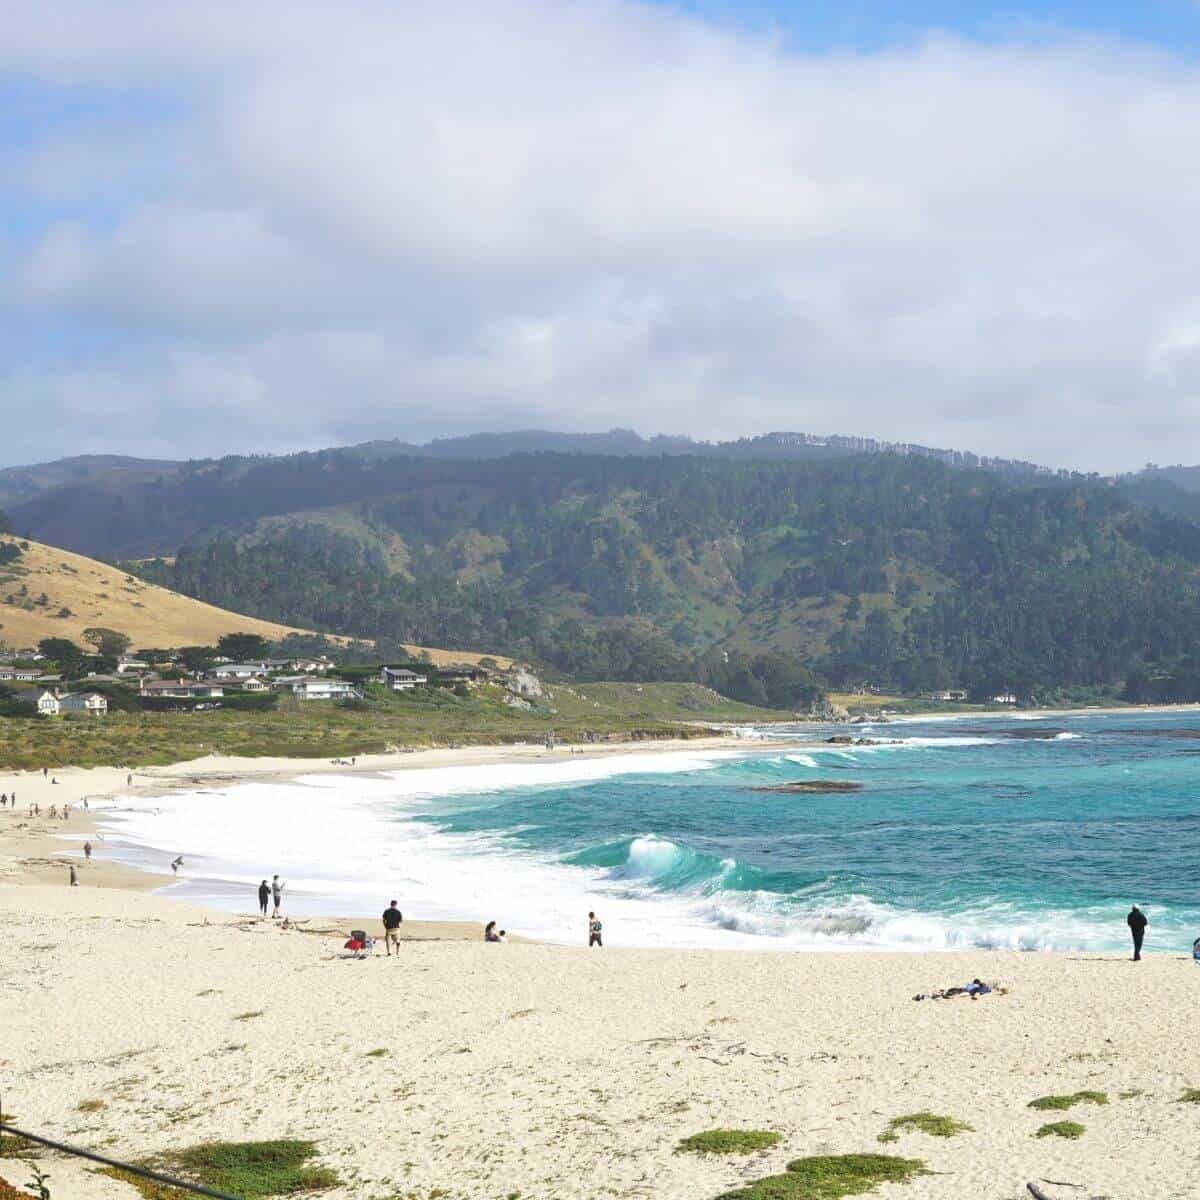 Carmel Beach with Cypress trees in the background.